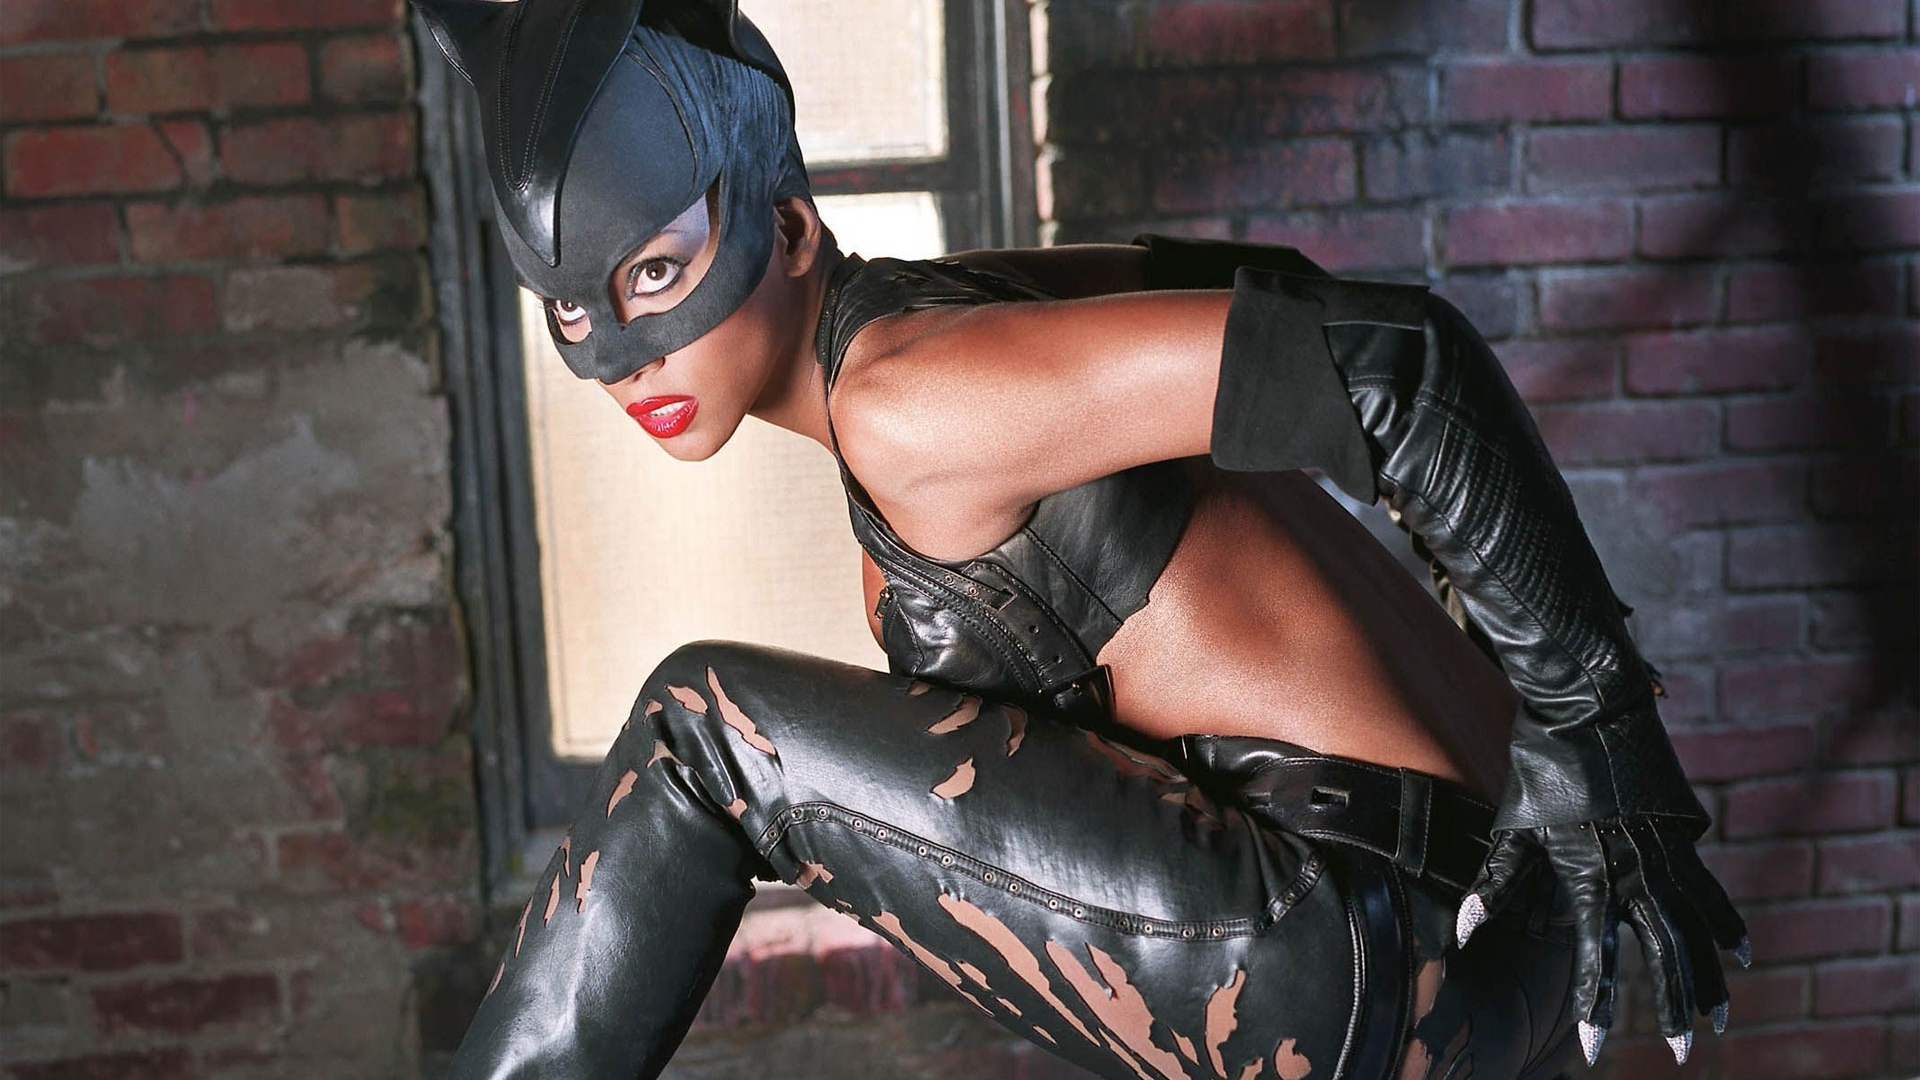 Halle Berry as Catwoman | CELEBRITY